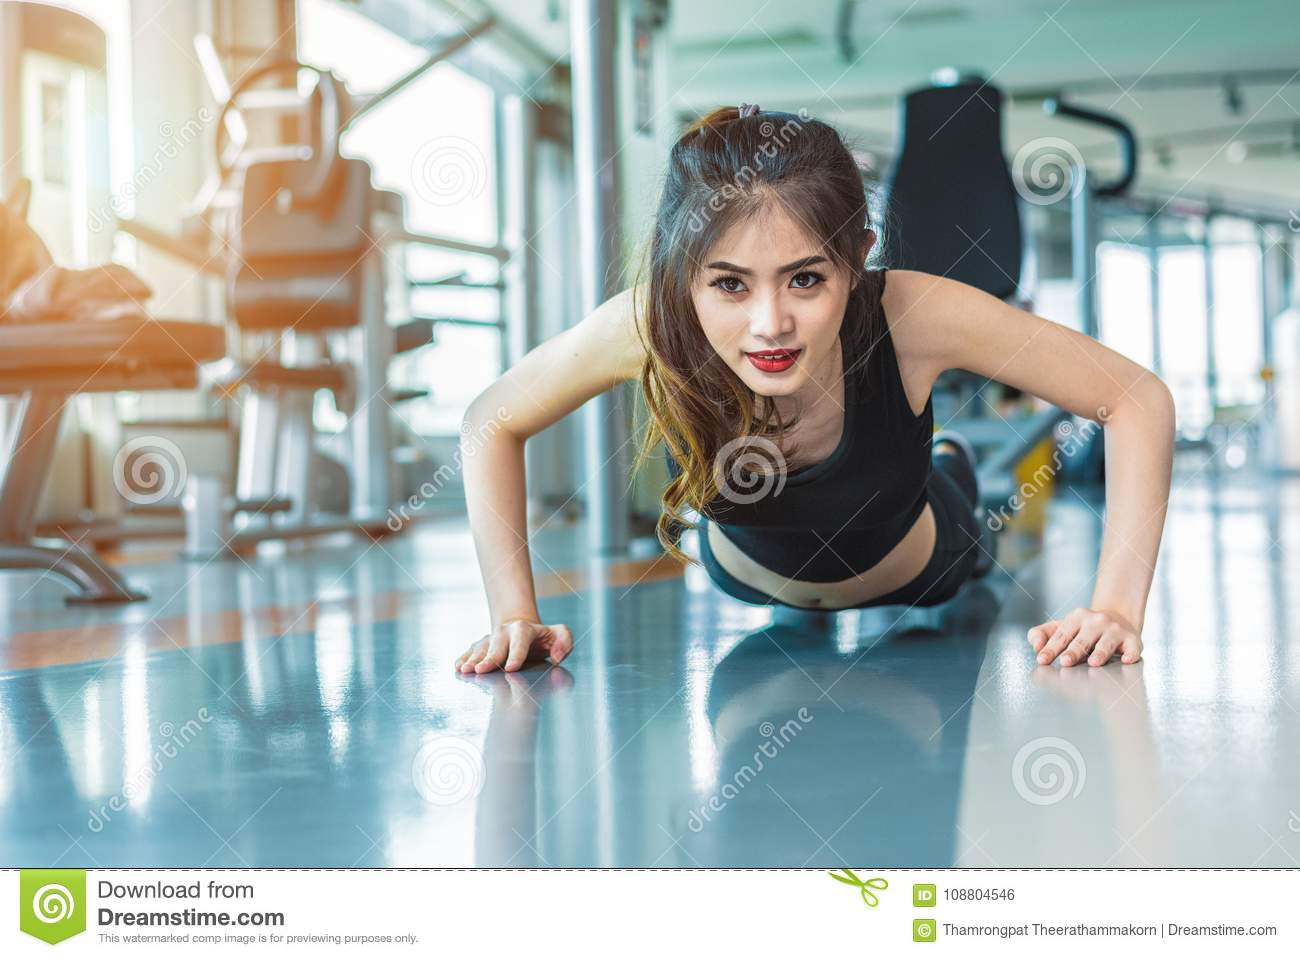 Asian woman fitness girl do pushing ups at fitness gym. Healthcare and Healthy concept. Training and Body build up theme.